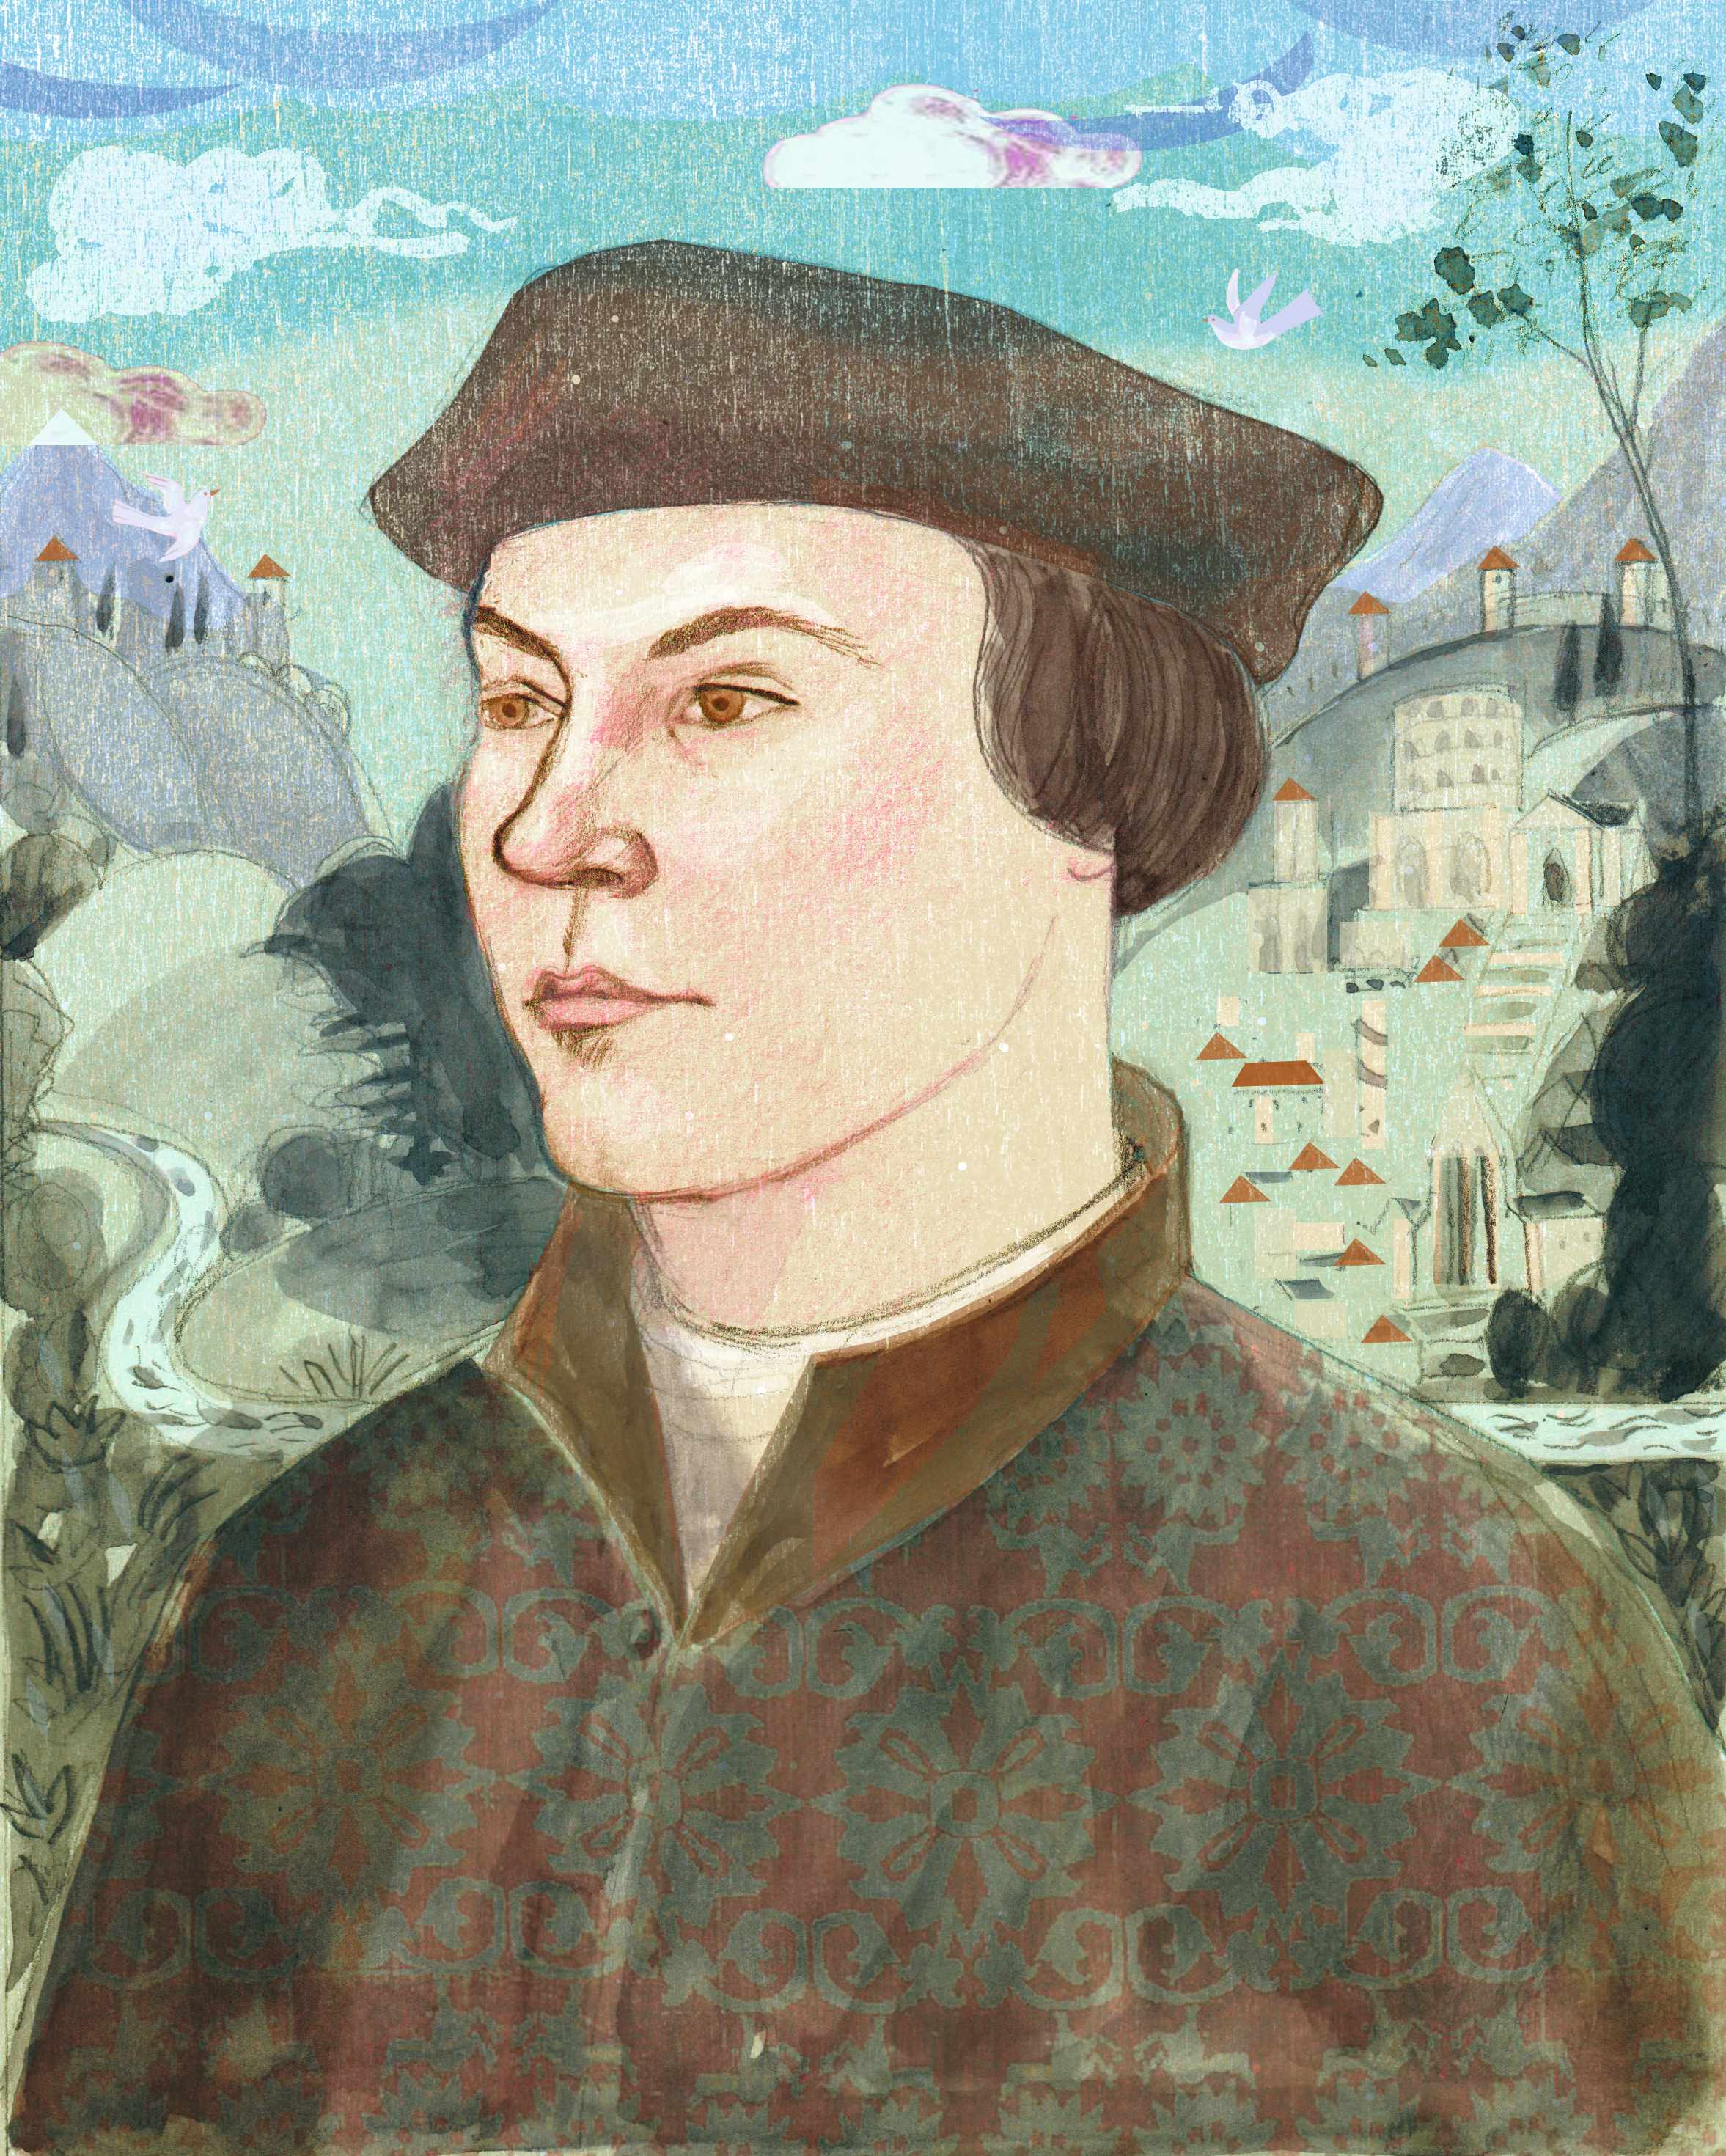 In c1500, the young Thomas Cromwell travelled from his humble Putney home to the great cities of Italy, as shown in our illustration. The connections he established on the Italian peninsula would prove key to his meteoric rise to power back in England. (Illustration by Sarah Young for BBC History Magazine)